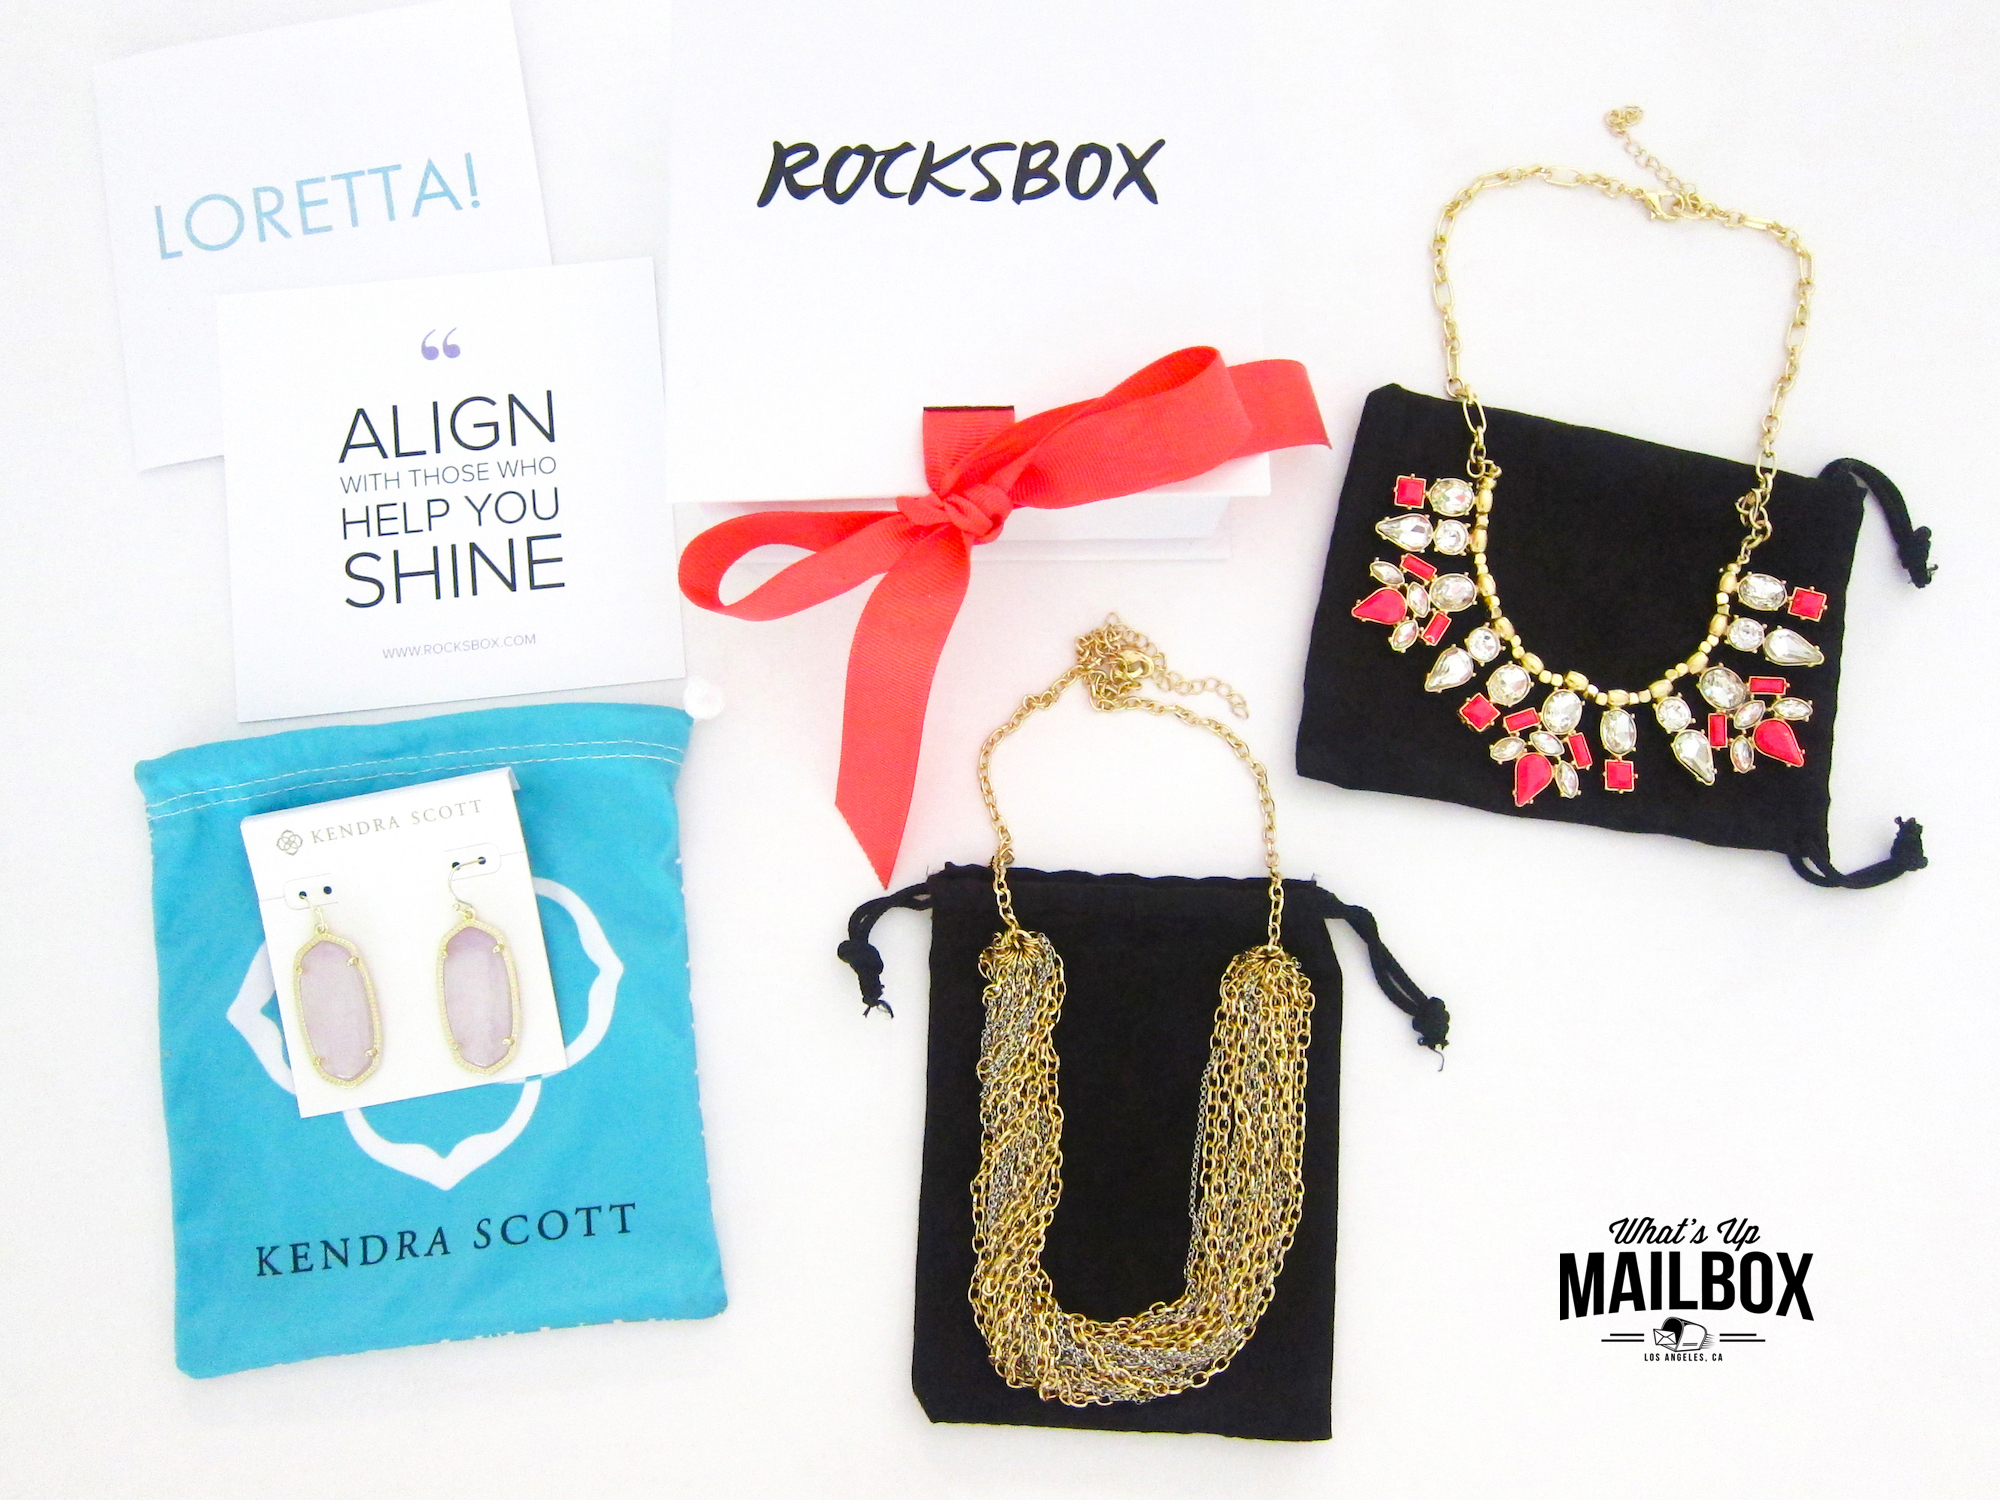 Rocksbox March 2016 Items!